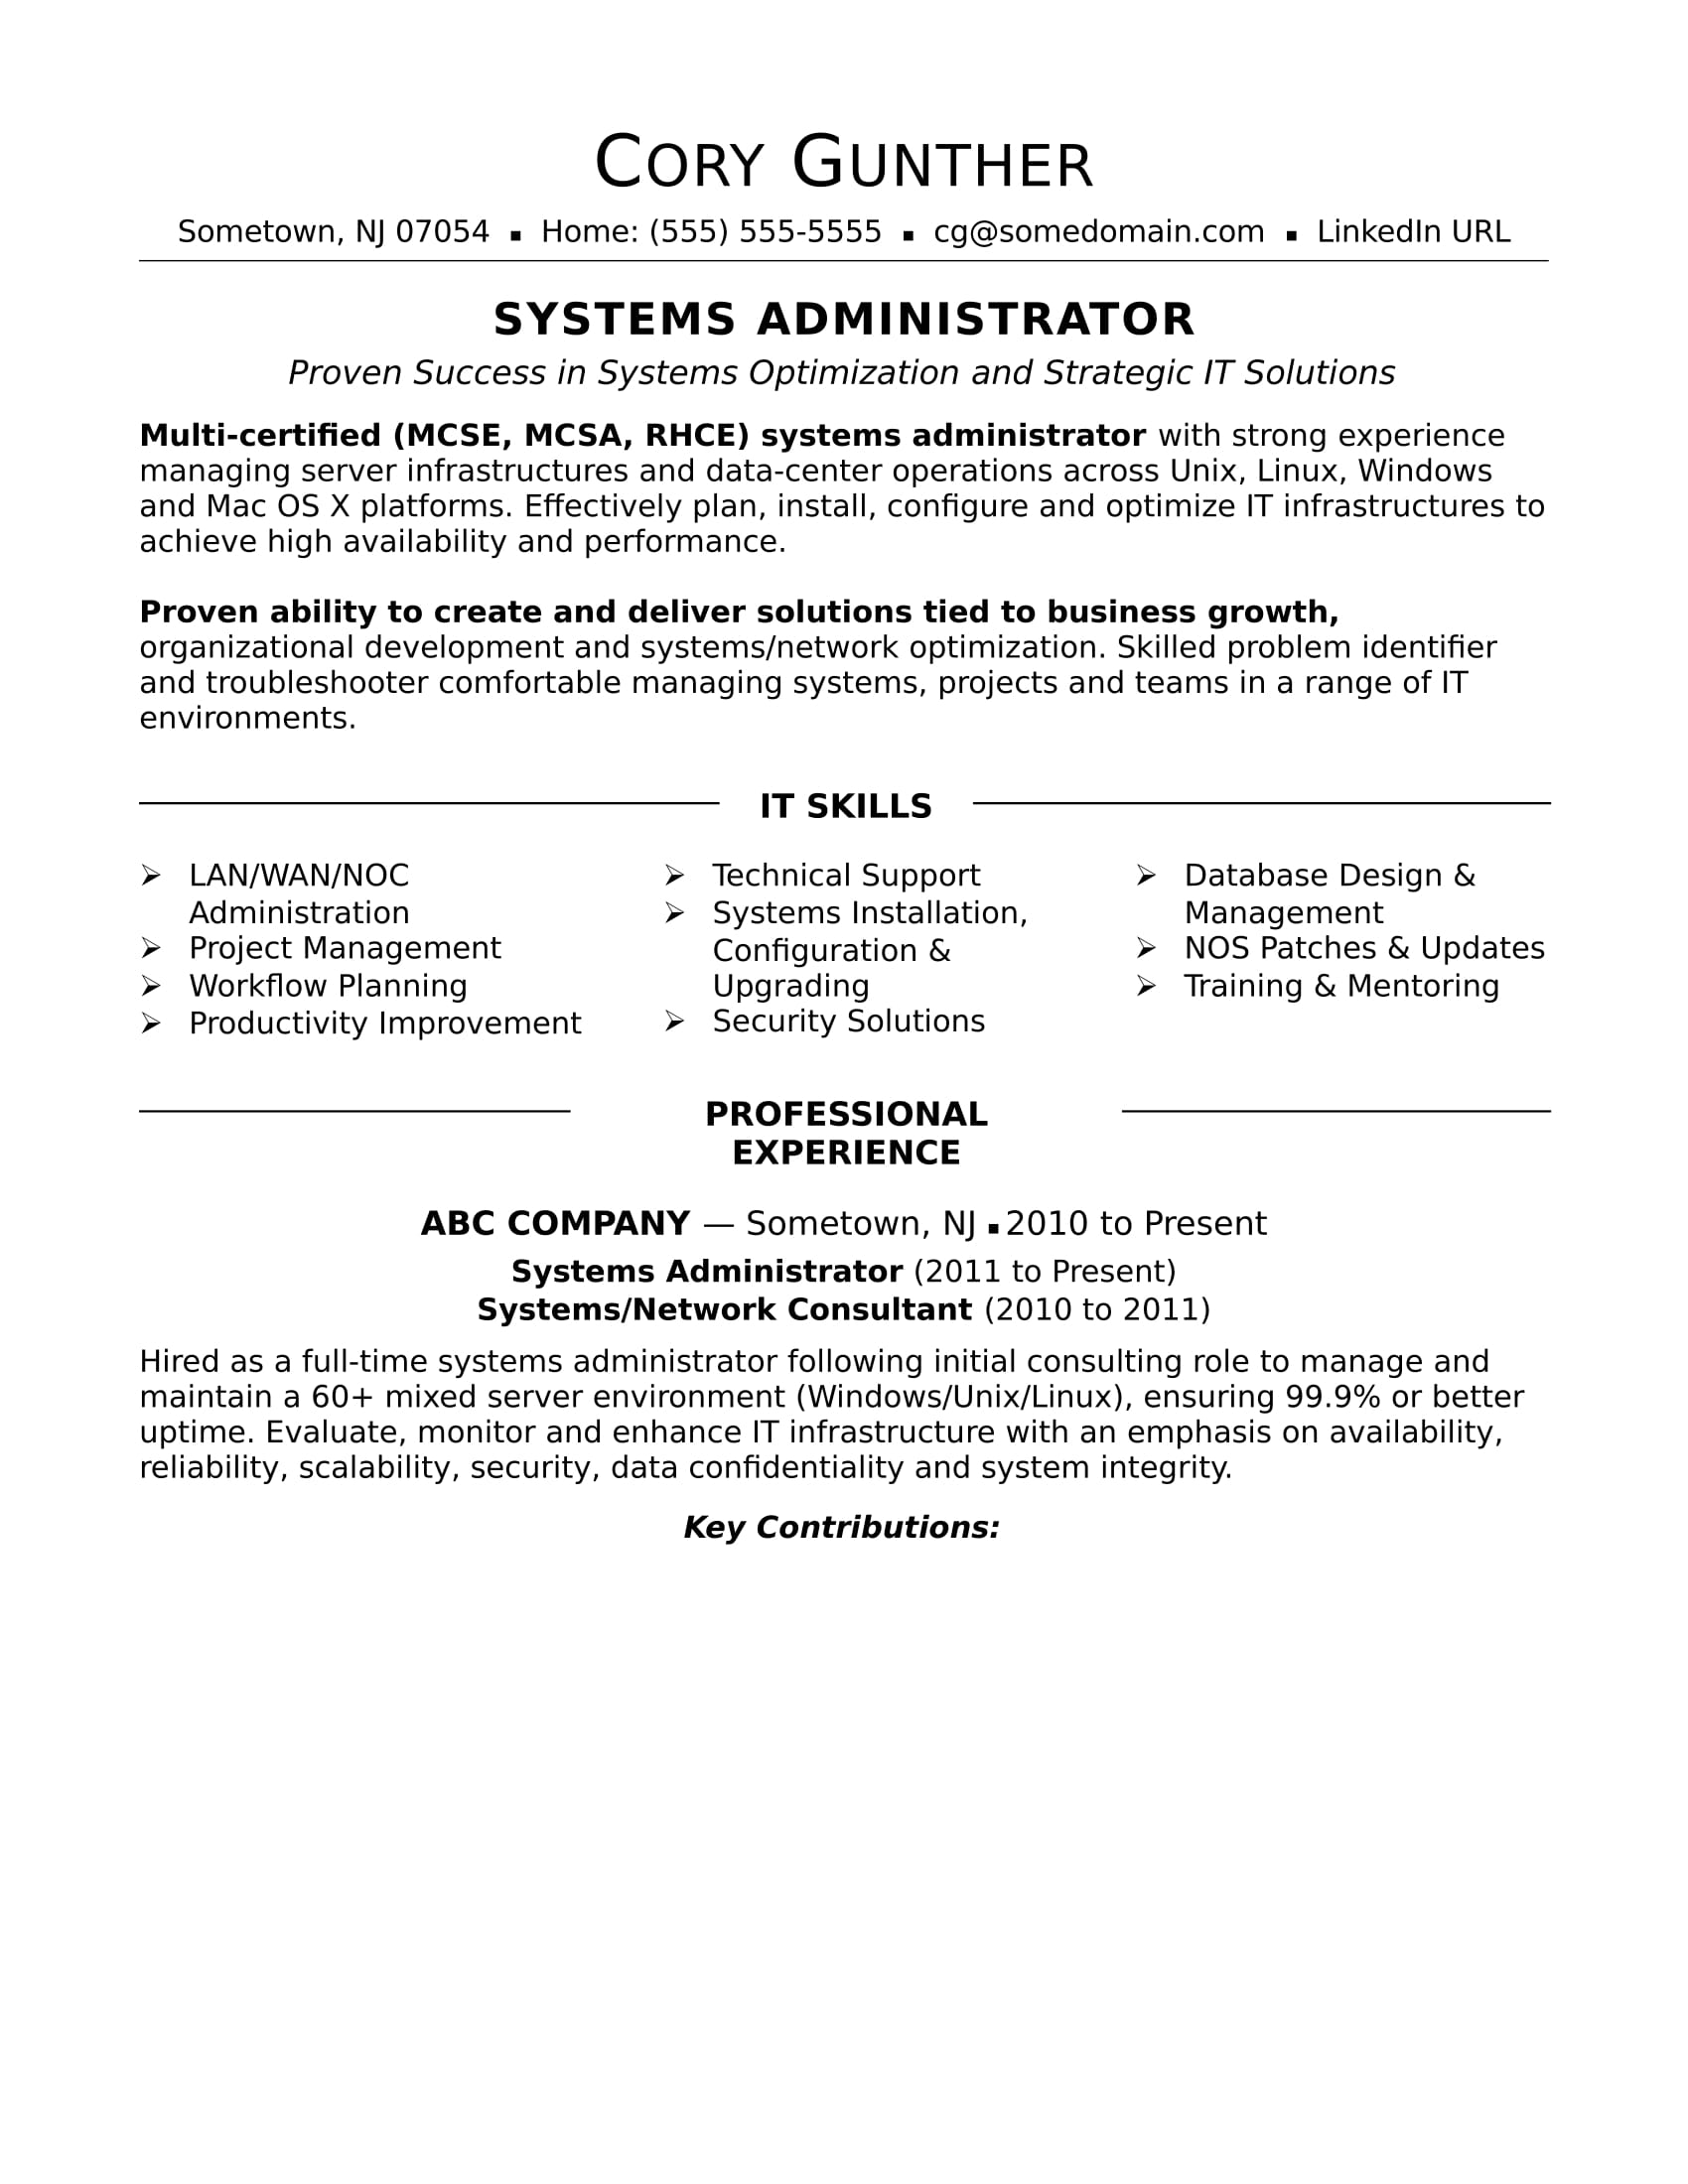 resume System Administrator Skills Resume sample resume for an experienced systems administrator monster com administrator